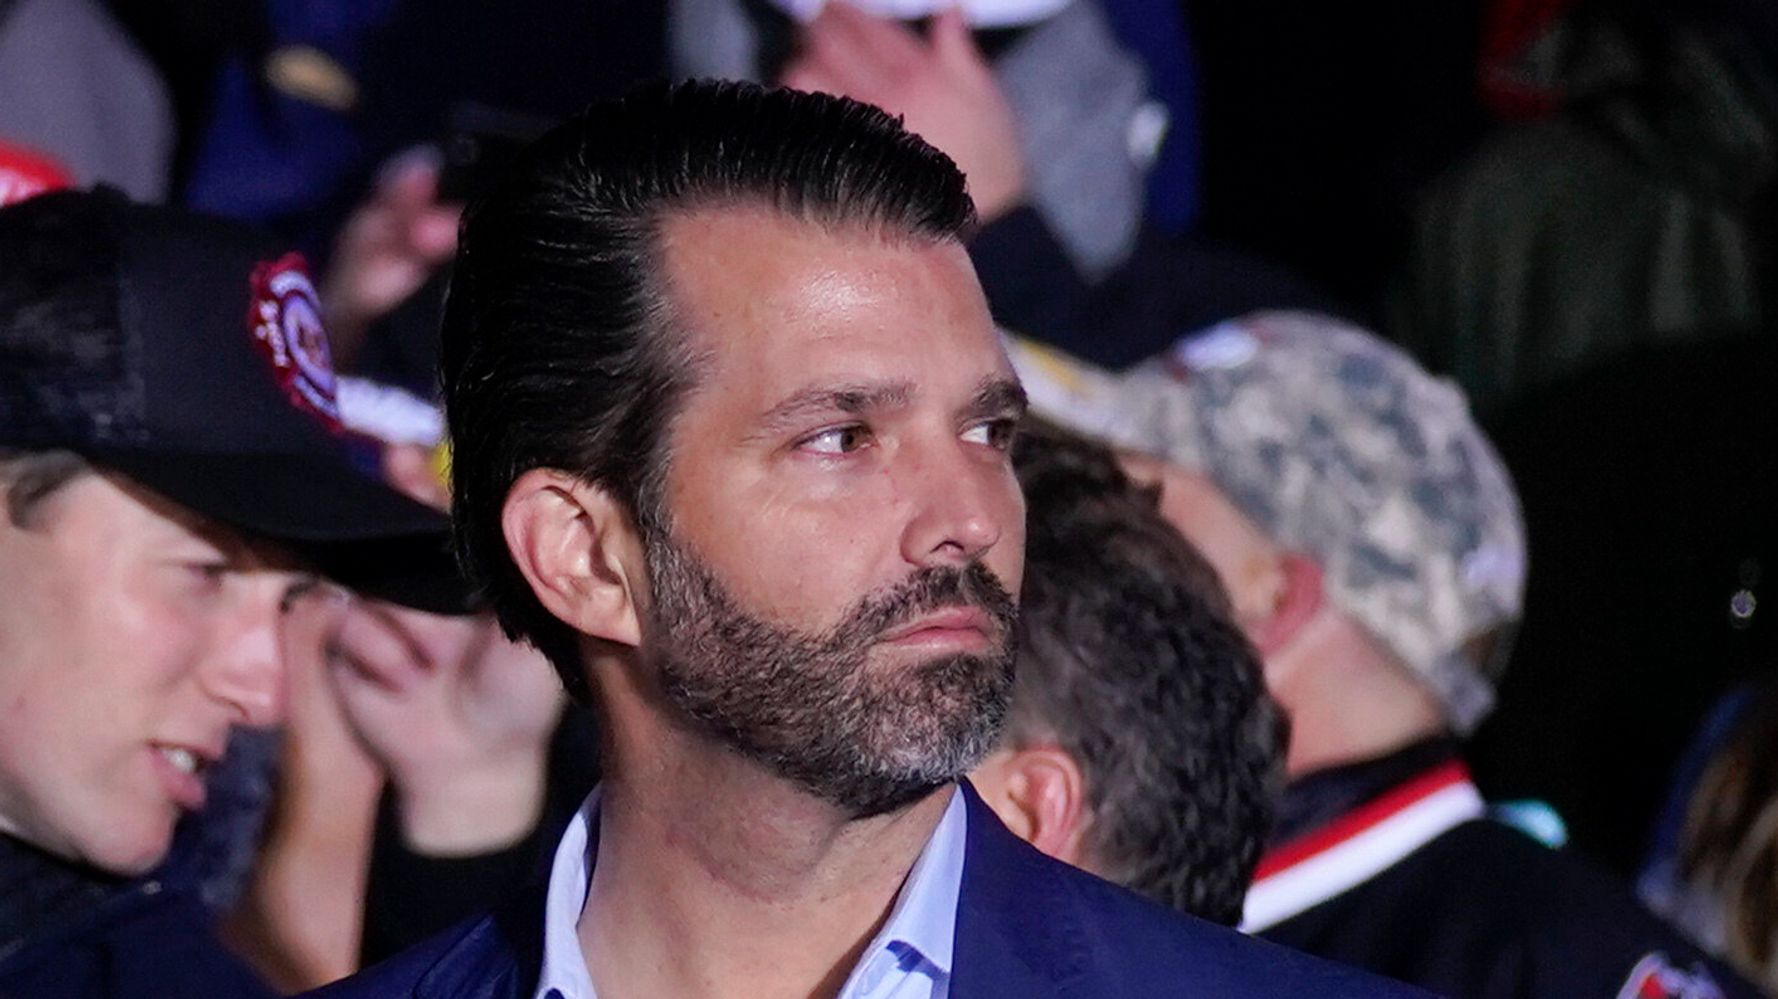 Donald Trump Jr. Gets Brutally Mocked For COVID-19 Vaccine Conspiracy Theory